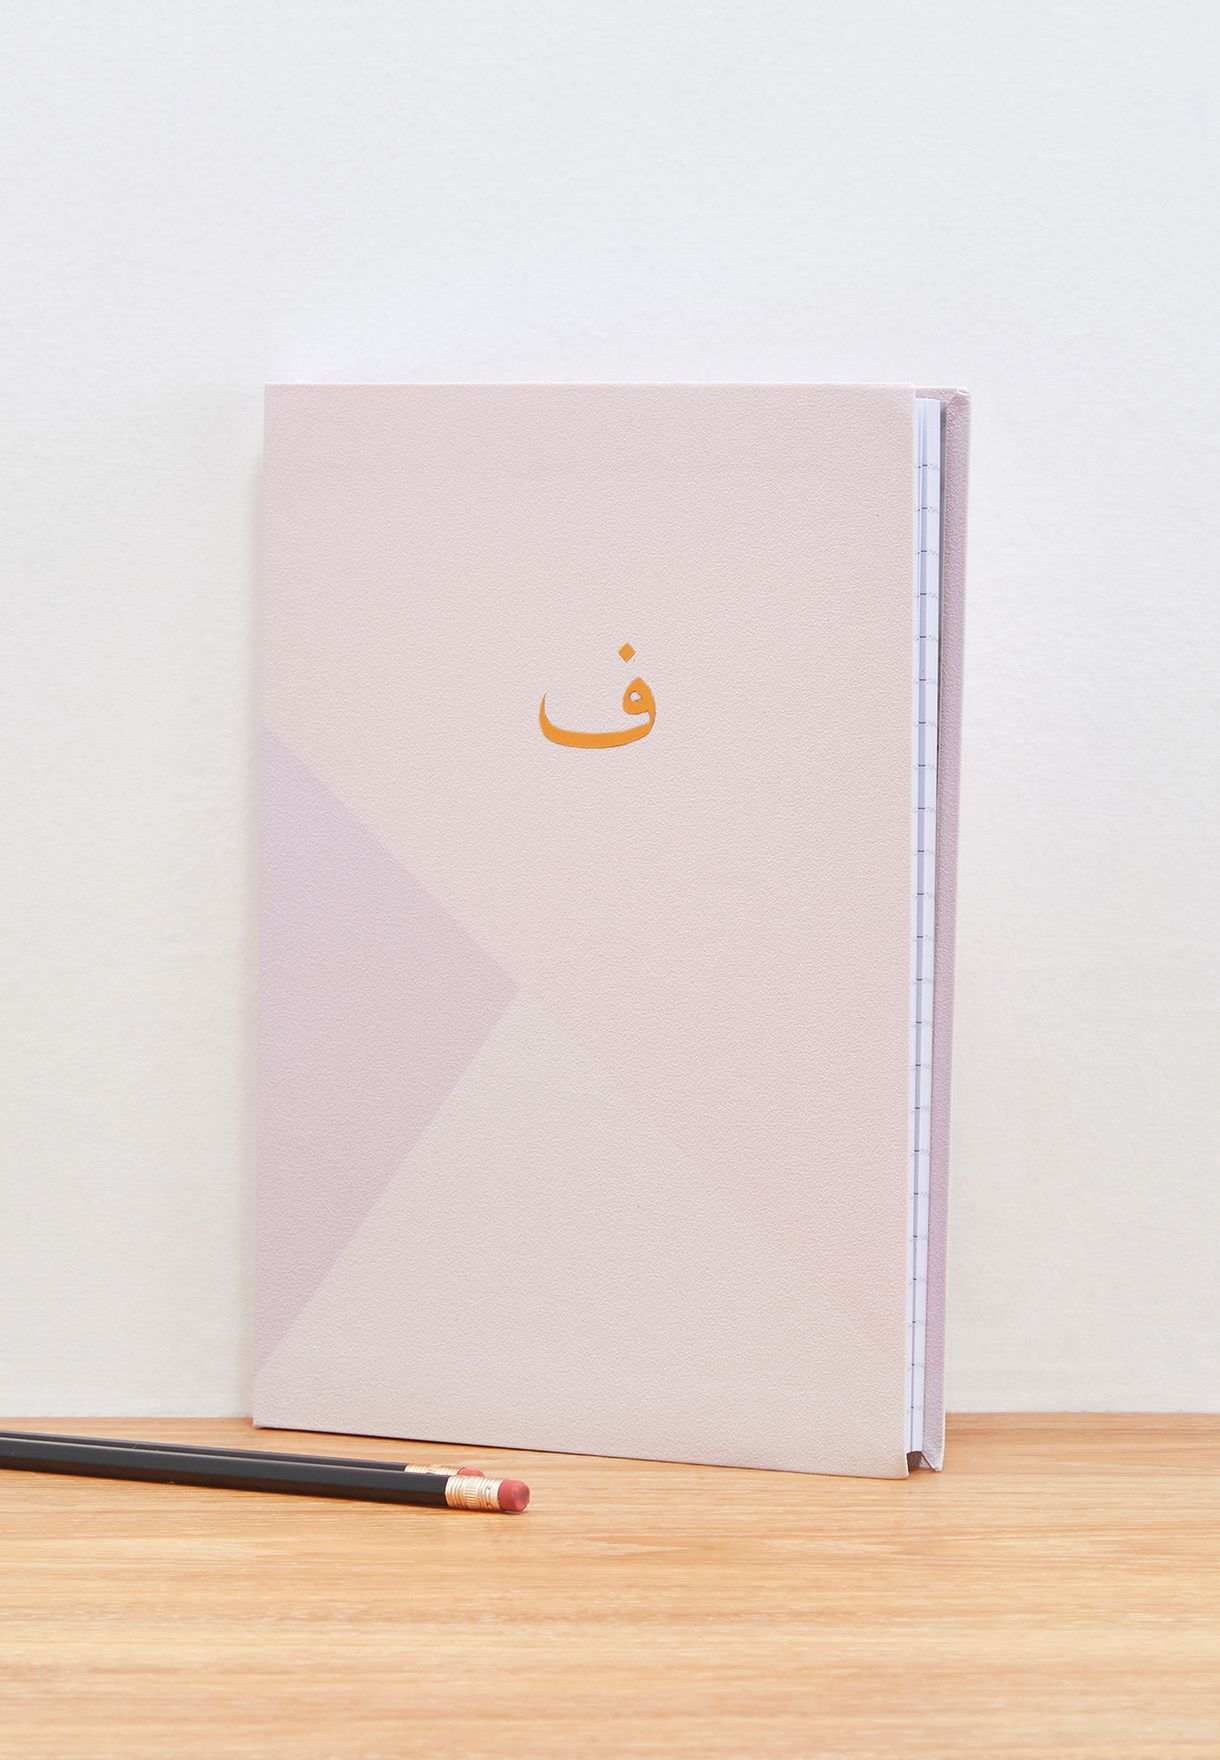 Premium Arabic Monogram Notebook F - B5 17.5x25cm